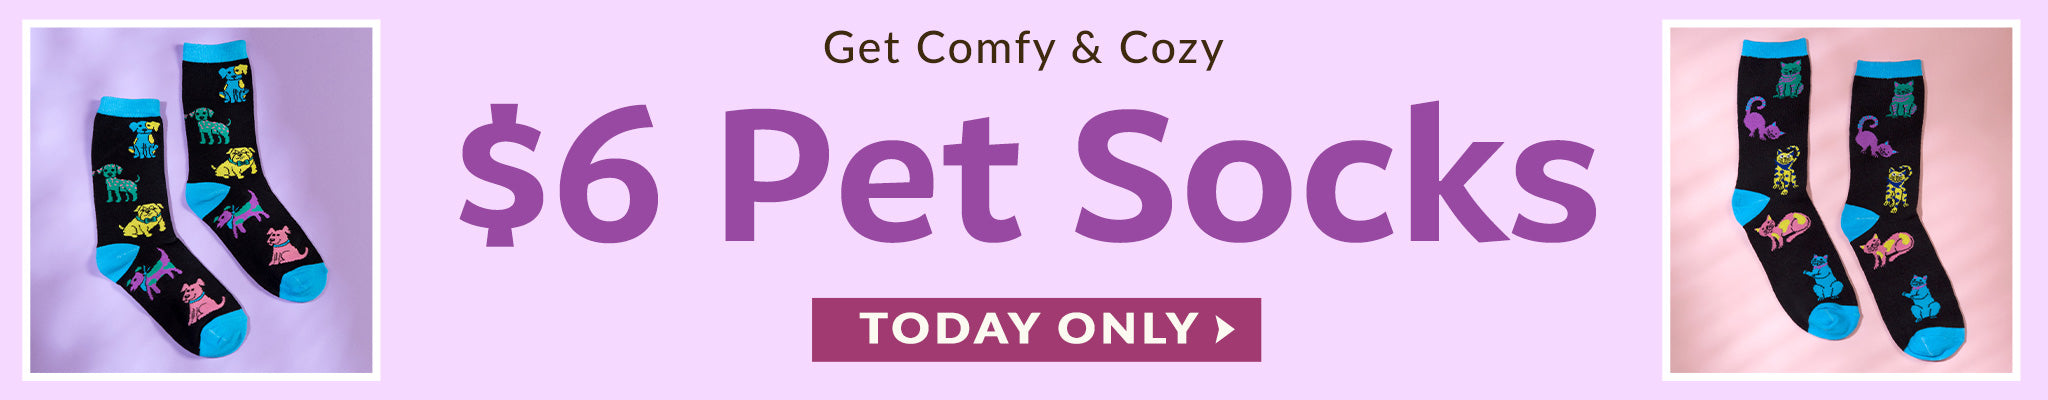 Get Comfy & Cozy   $6 Pet Socks   Today Only